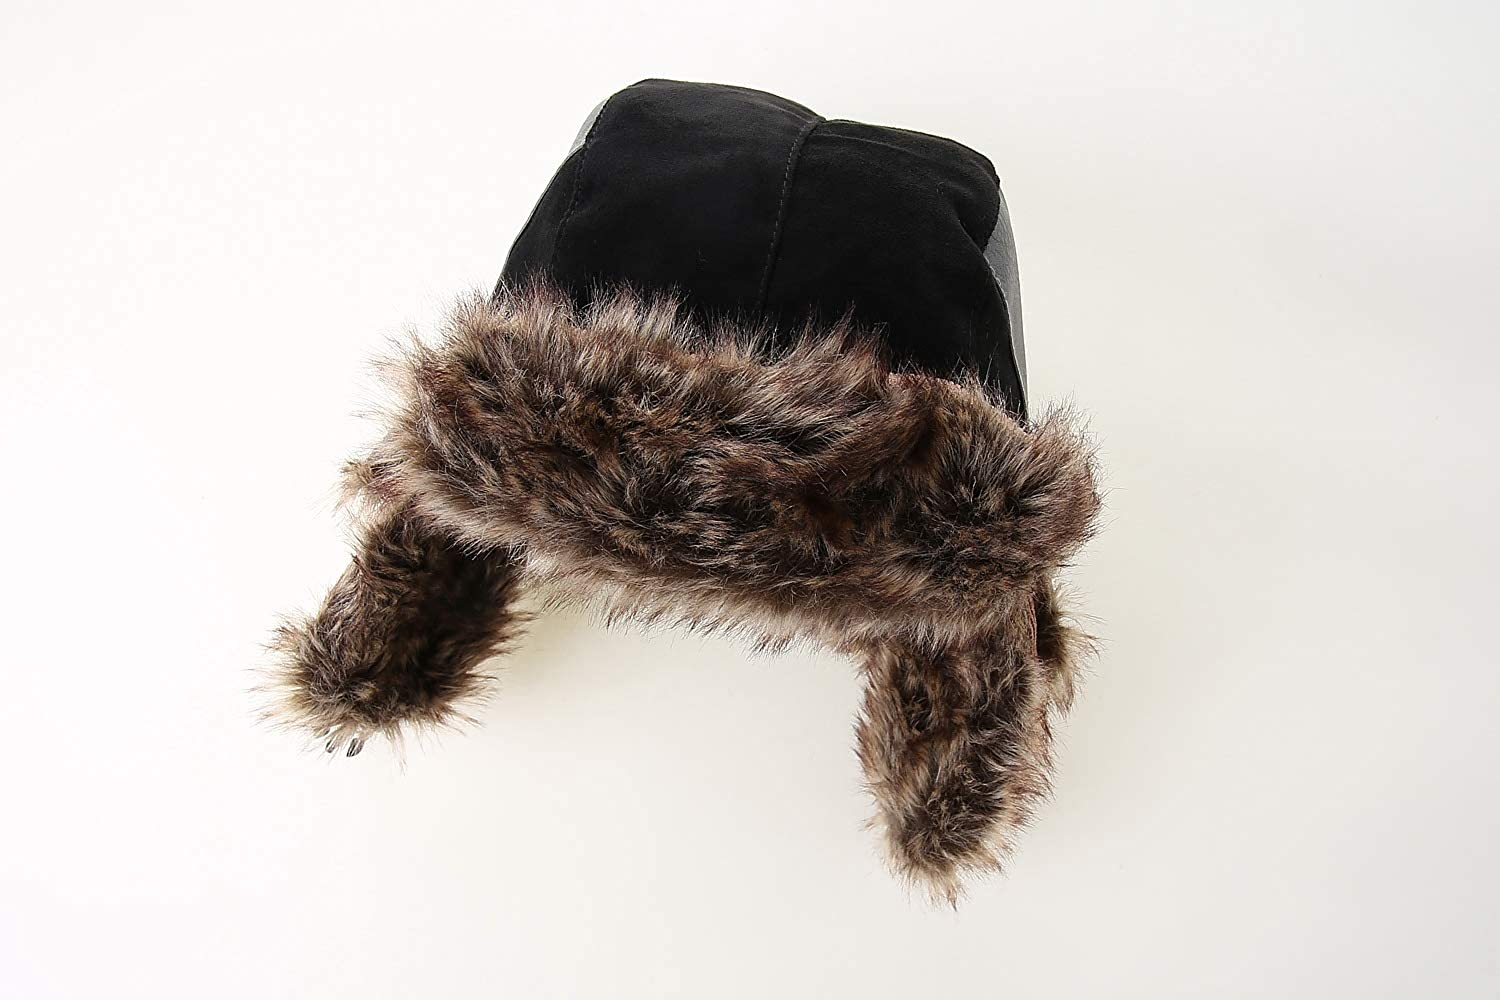 Moon Kitty Little Boys Winter Hat with Large Flaps Kids Nylon Russian//Aviator Winter Earflap Cap